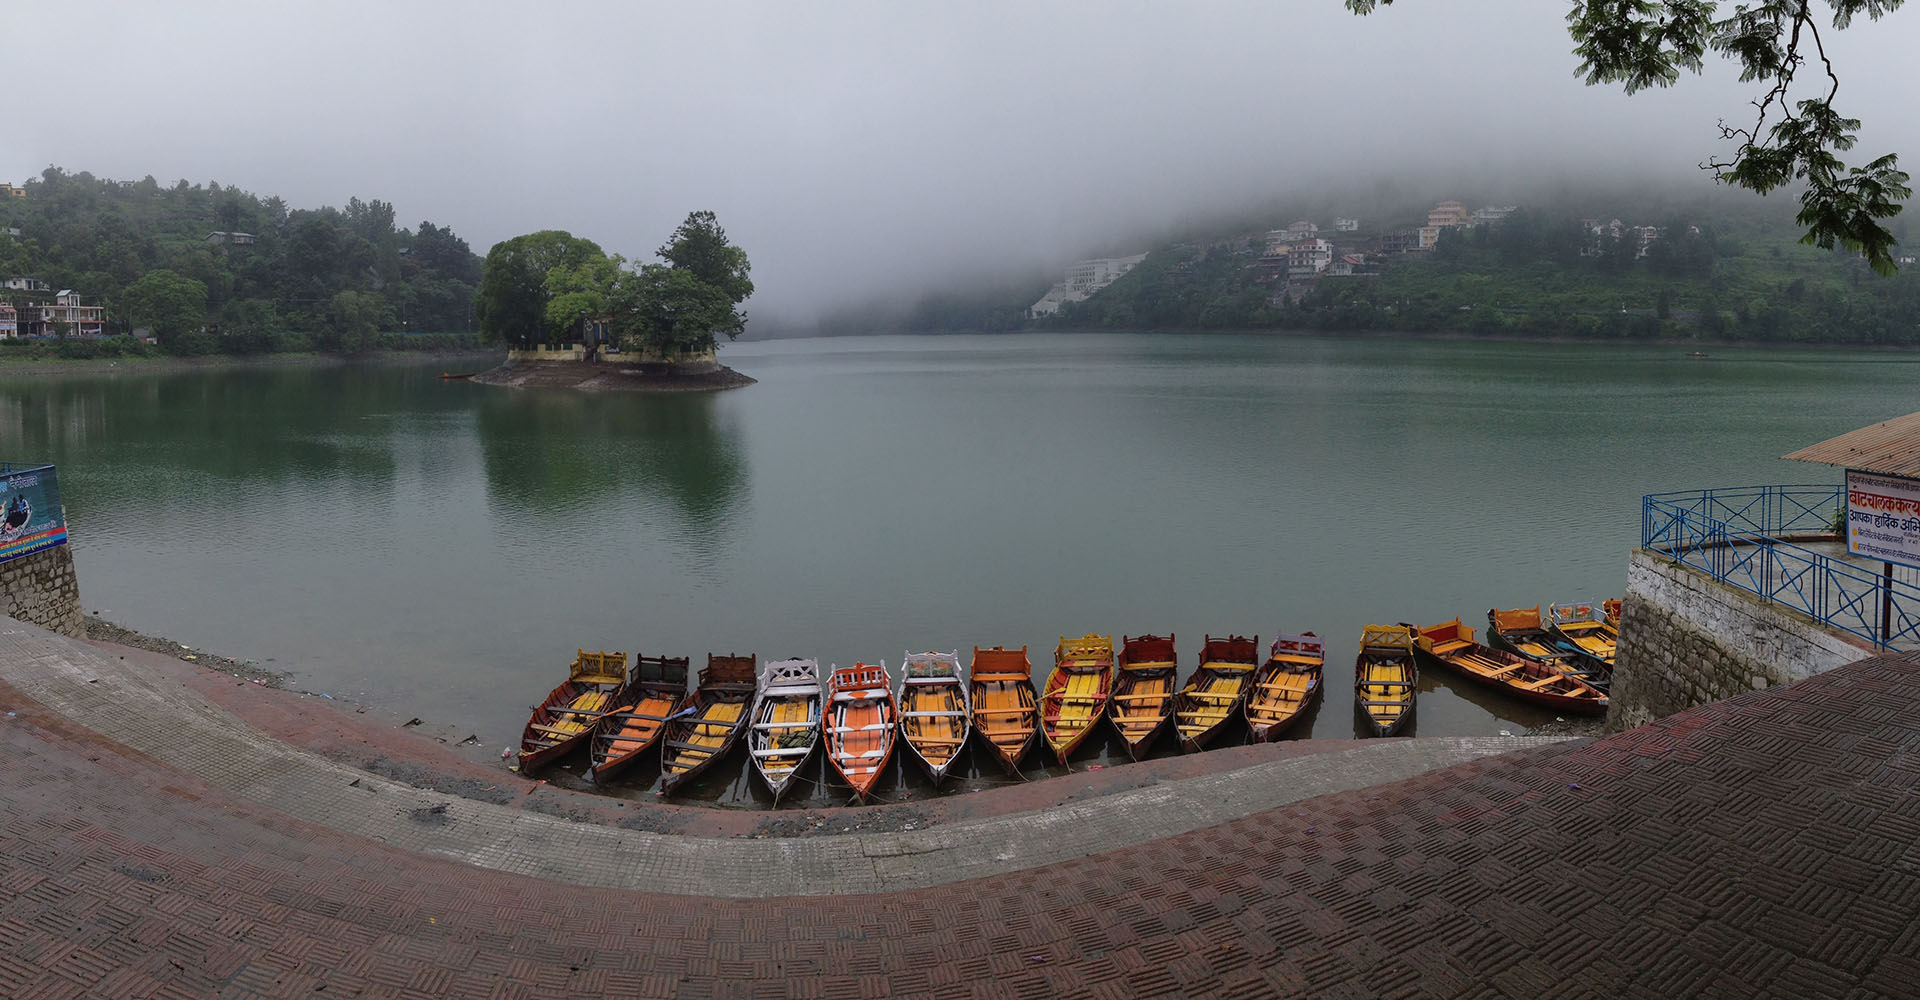 Bhimtal – Nainital's Lesser Known Cousin